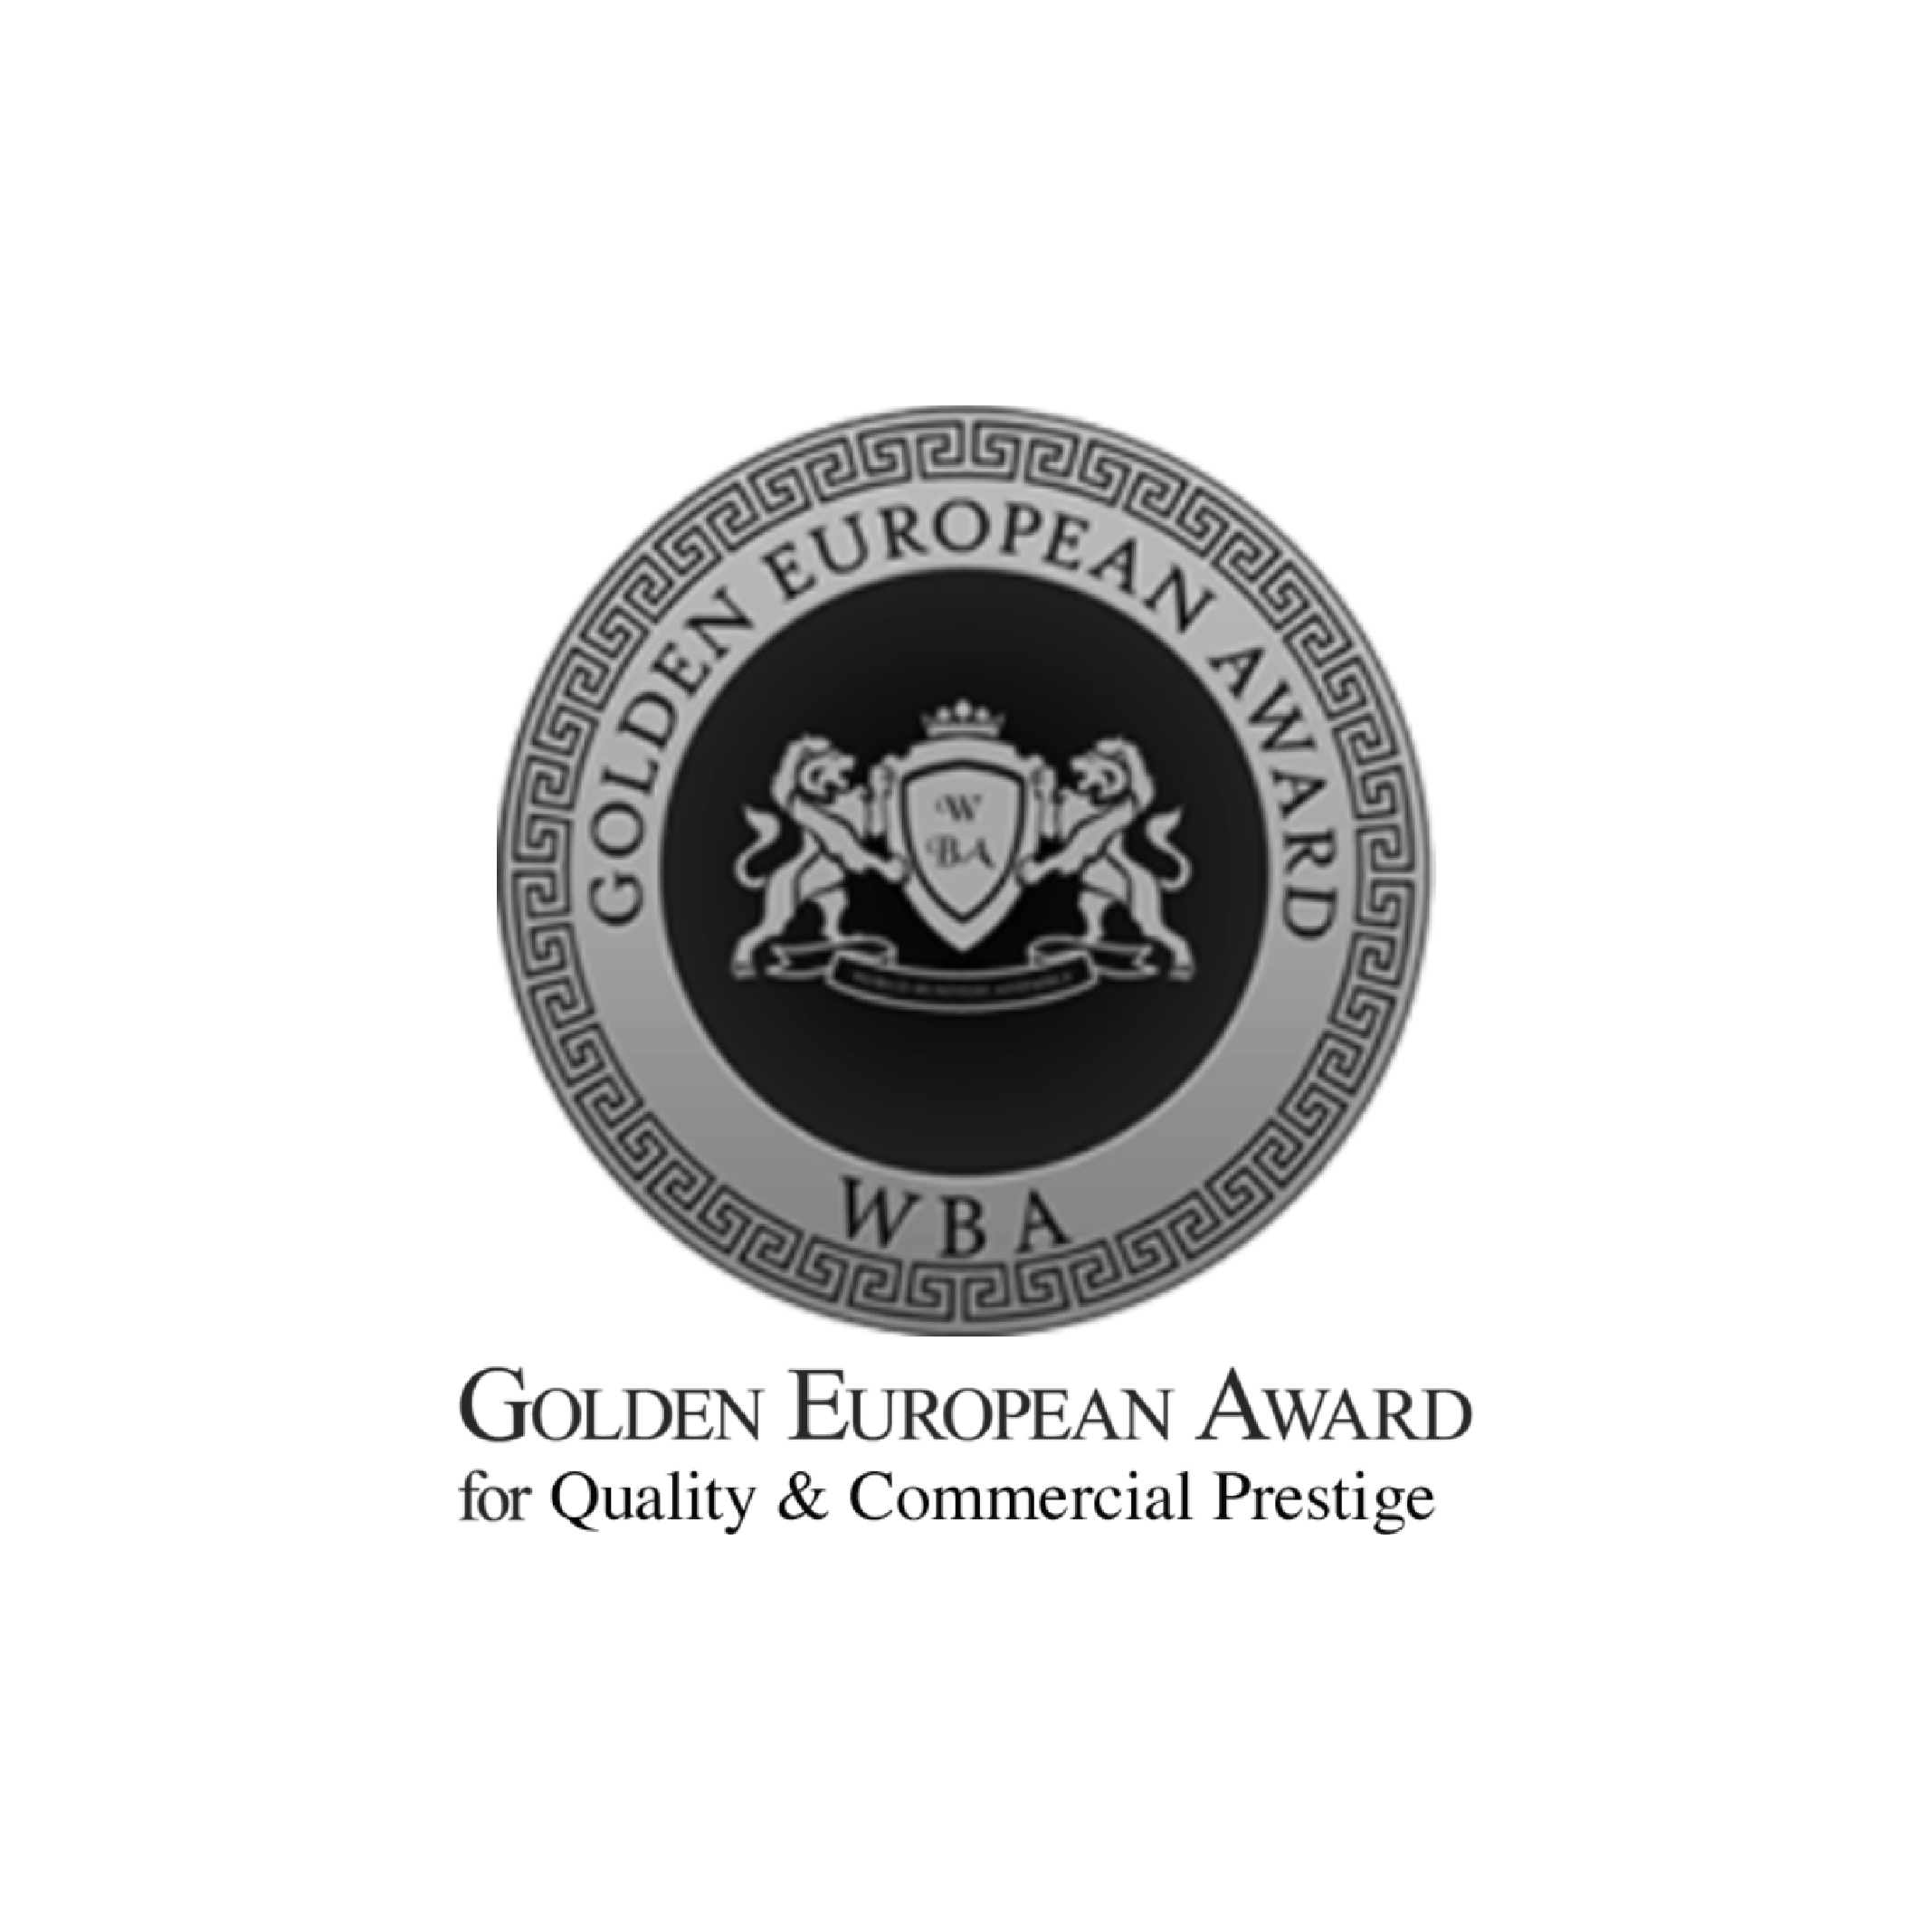 2017: THE GOLDEN EUROPE AWARD FOR QUALITY & COMMERCIAL PRESTIGE